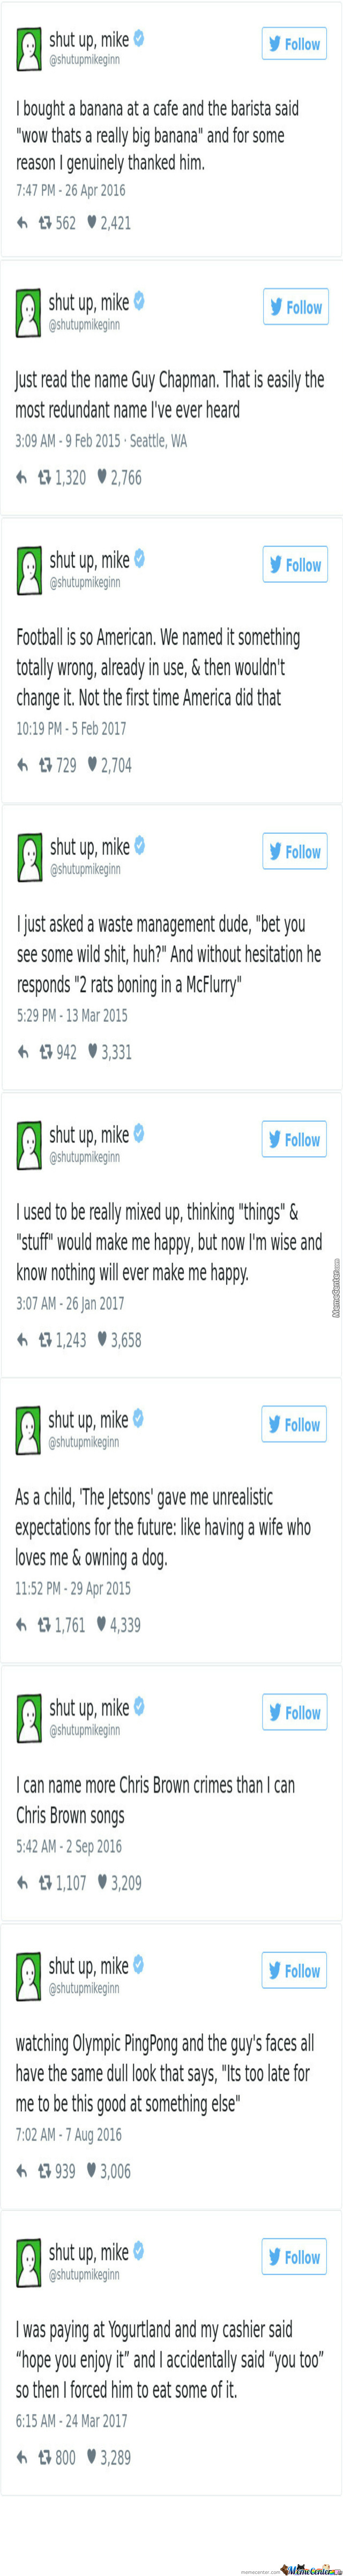 Shut Up,mike